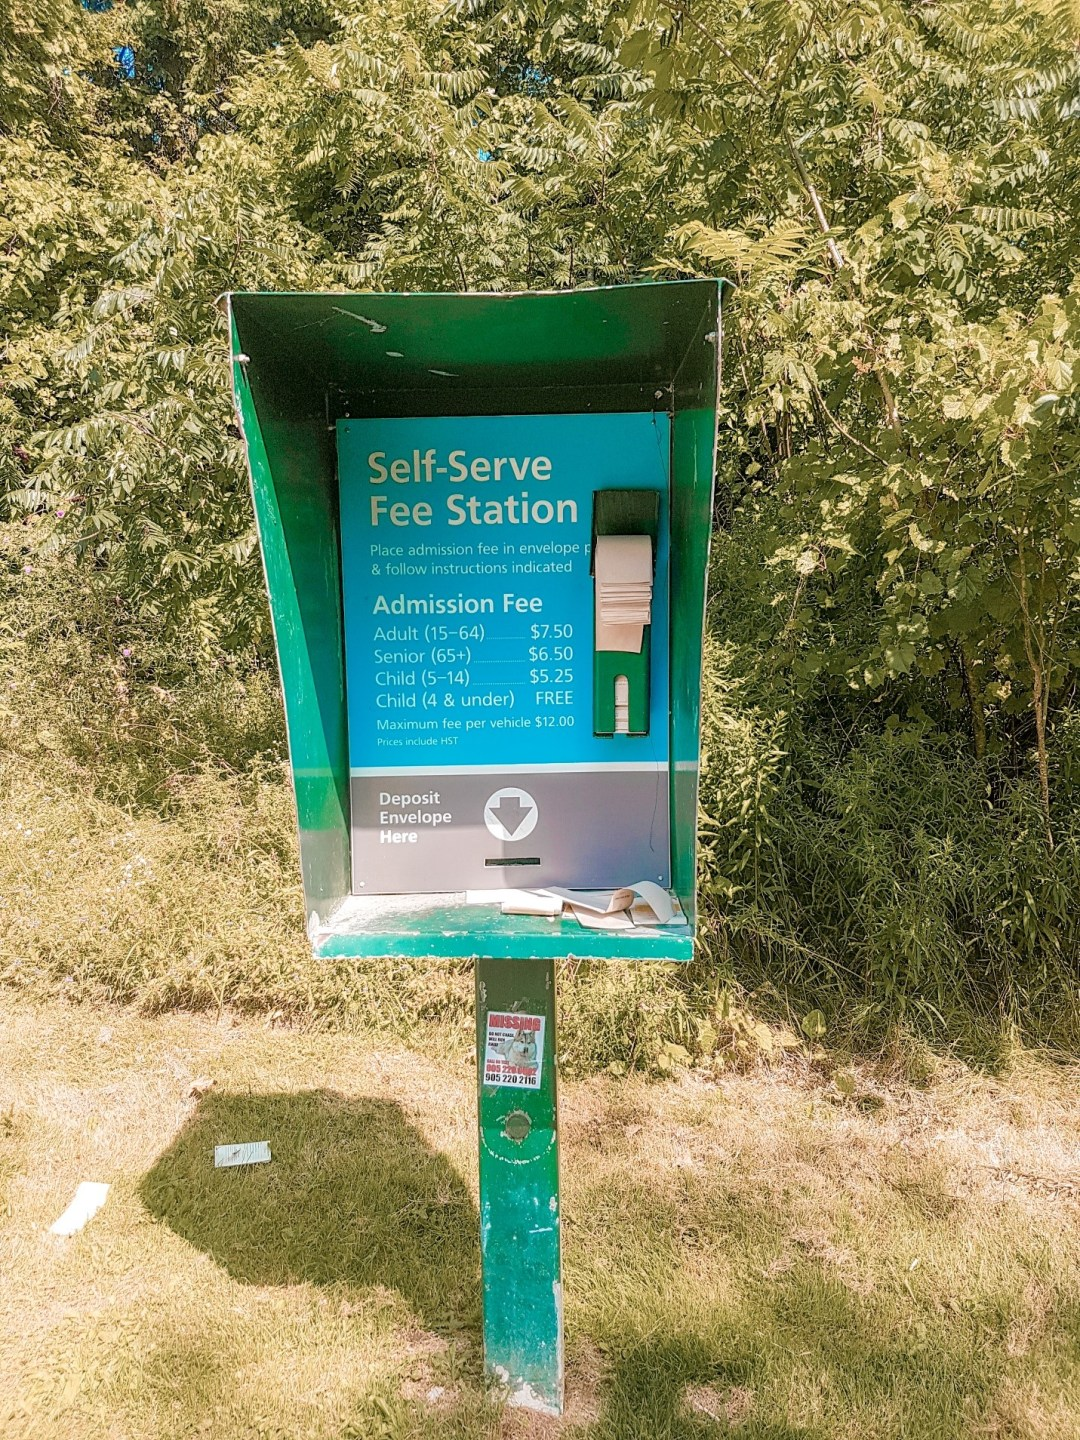 Pay station for Robert Edmondson Park